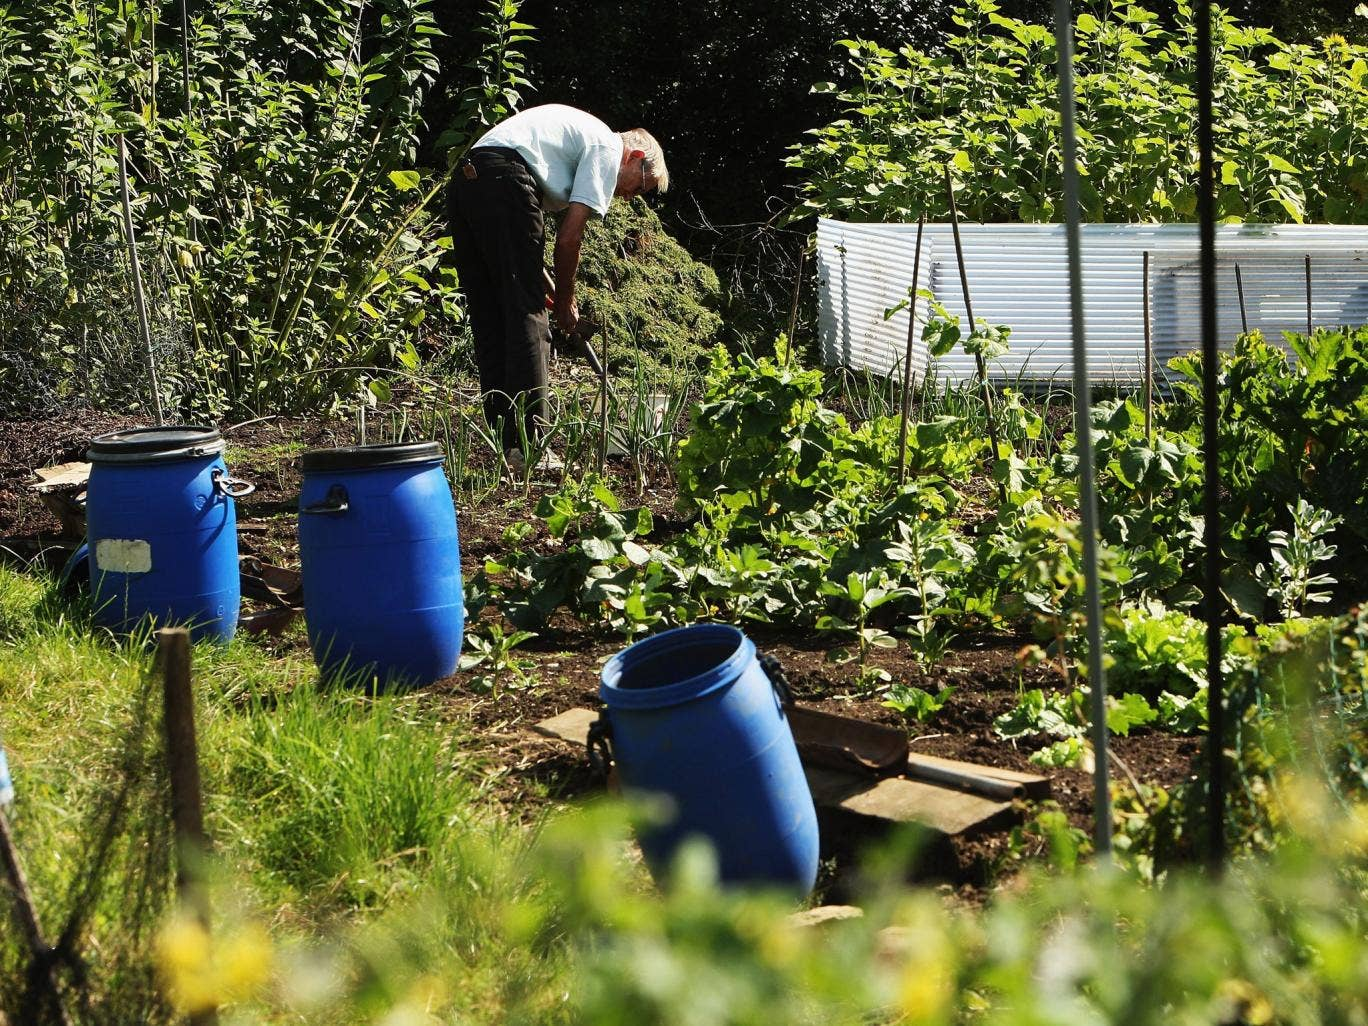 More allotments are being sold off by councils